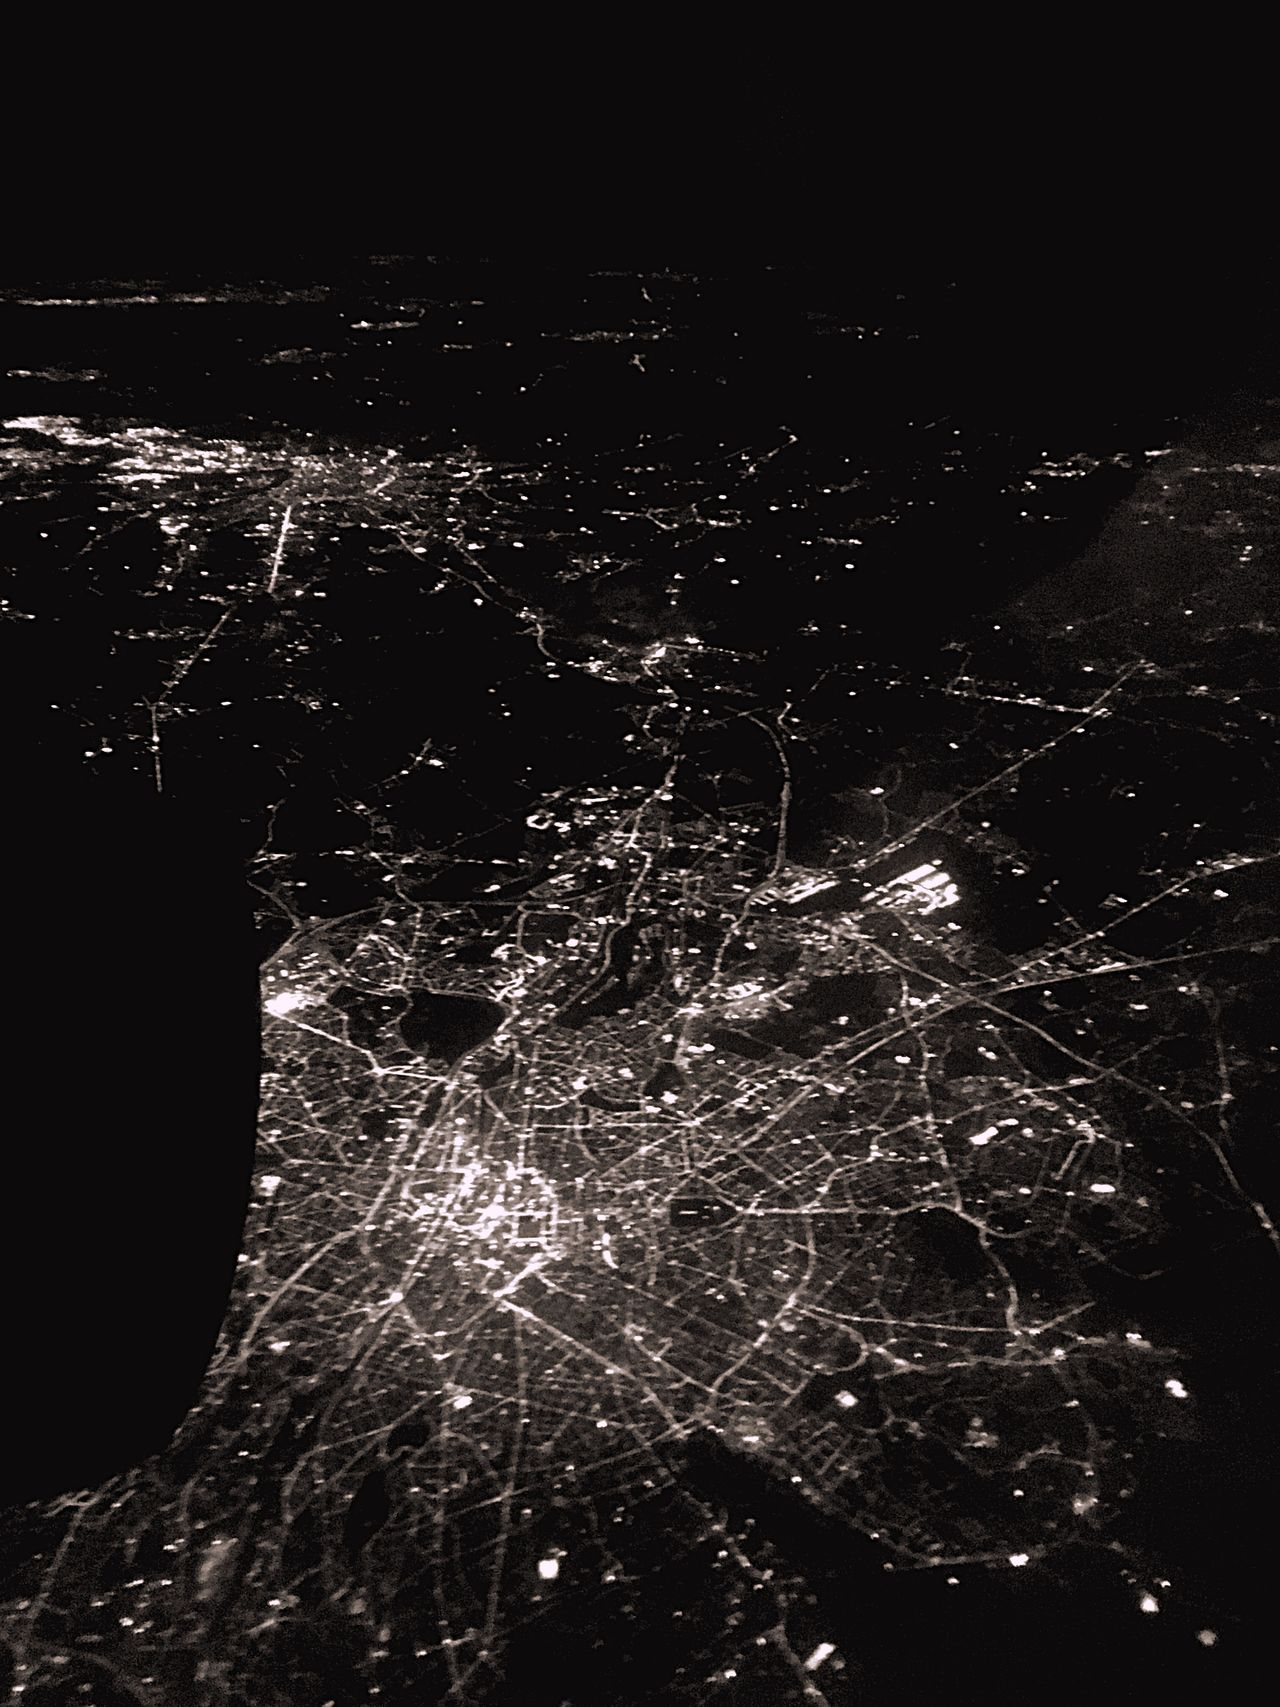 The scale of Humanity. Over Brussels, in the dark.